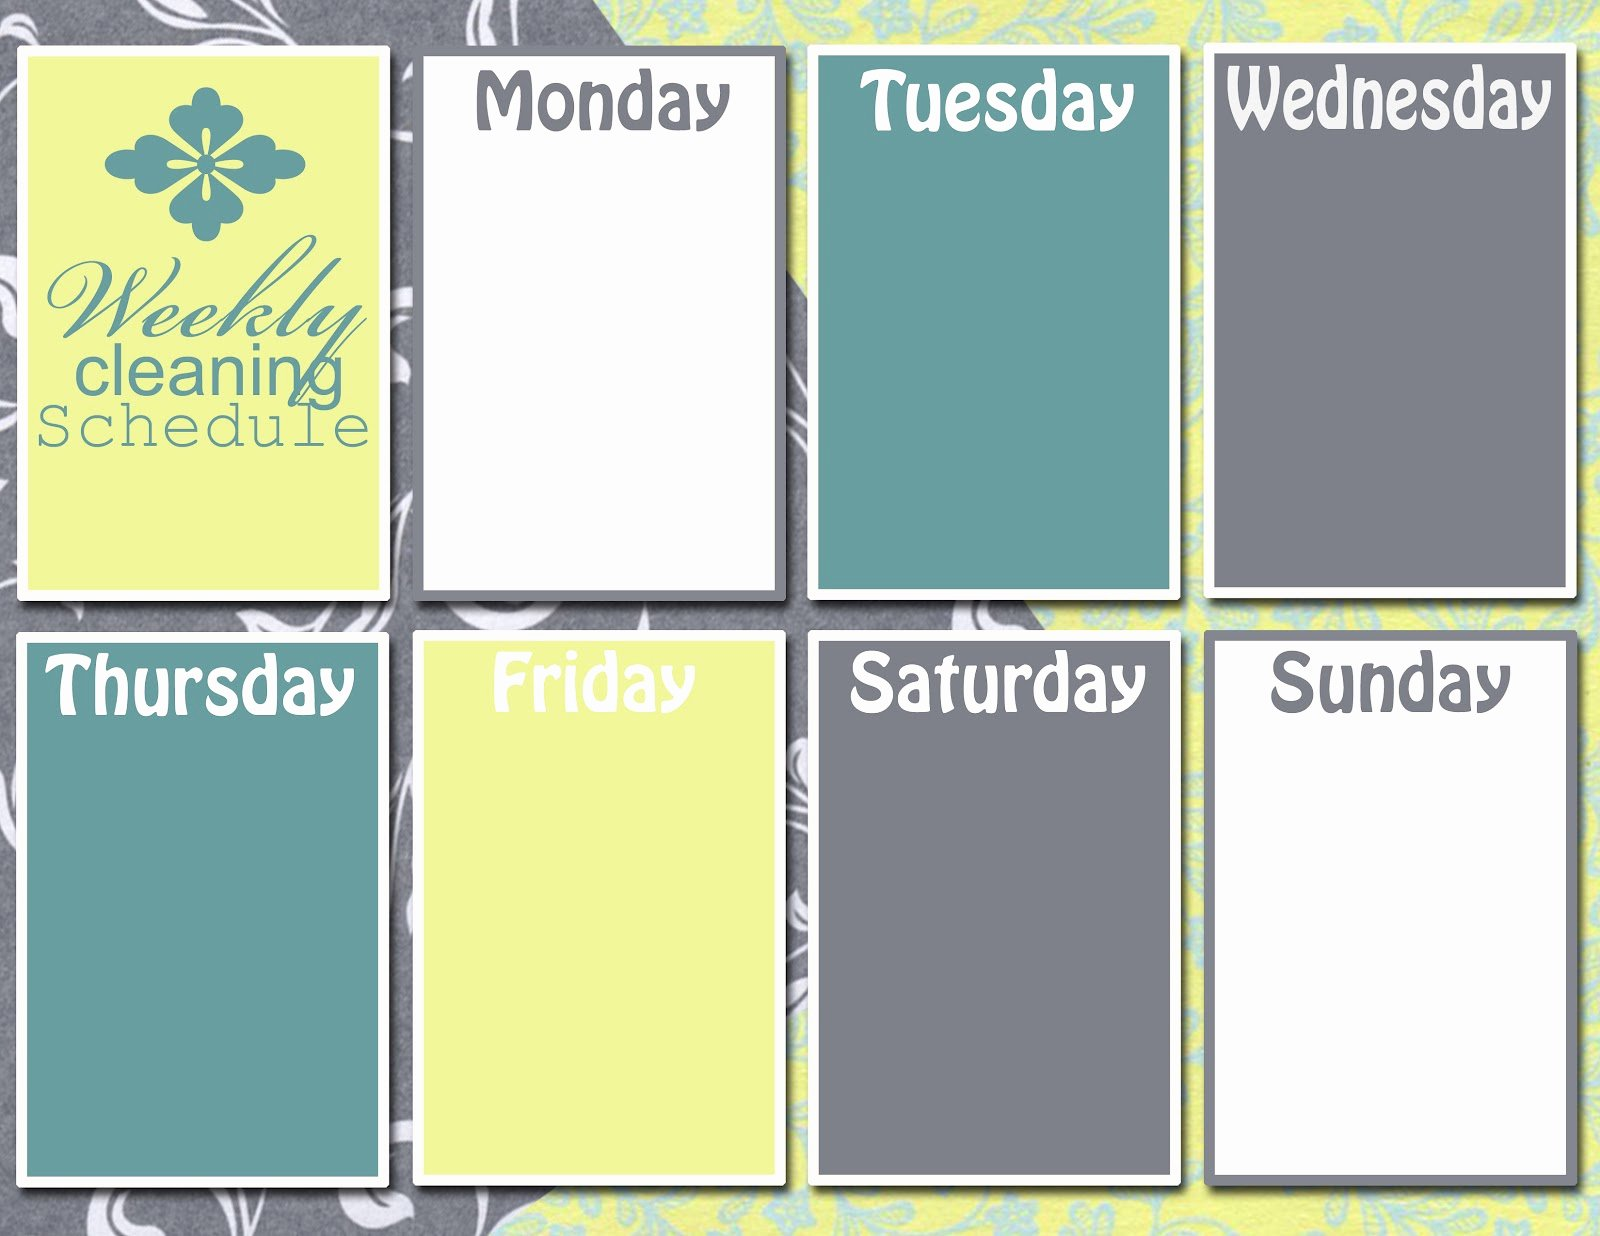 Monday Through Sunday Schedule Template Beautiful Graphic Monday Weekly Cleaning Schedule